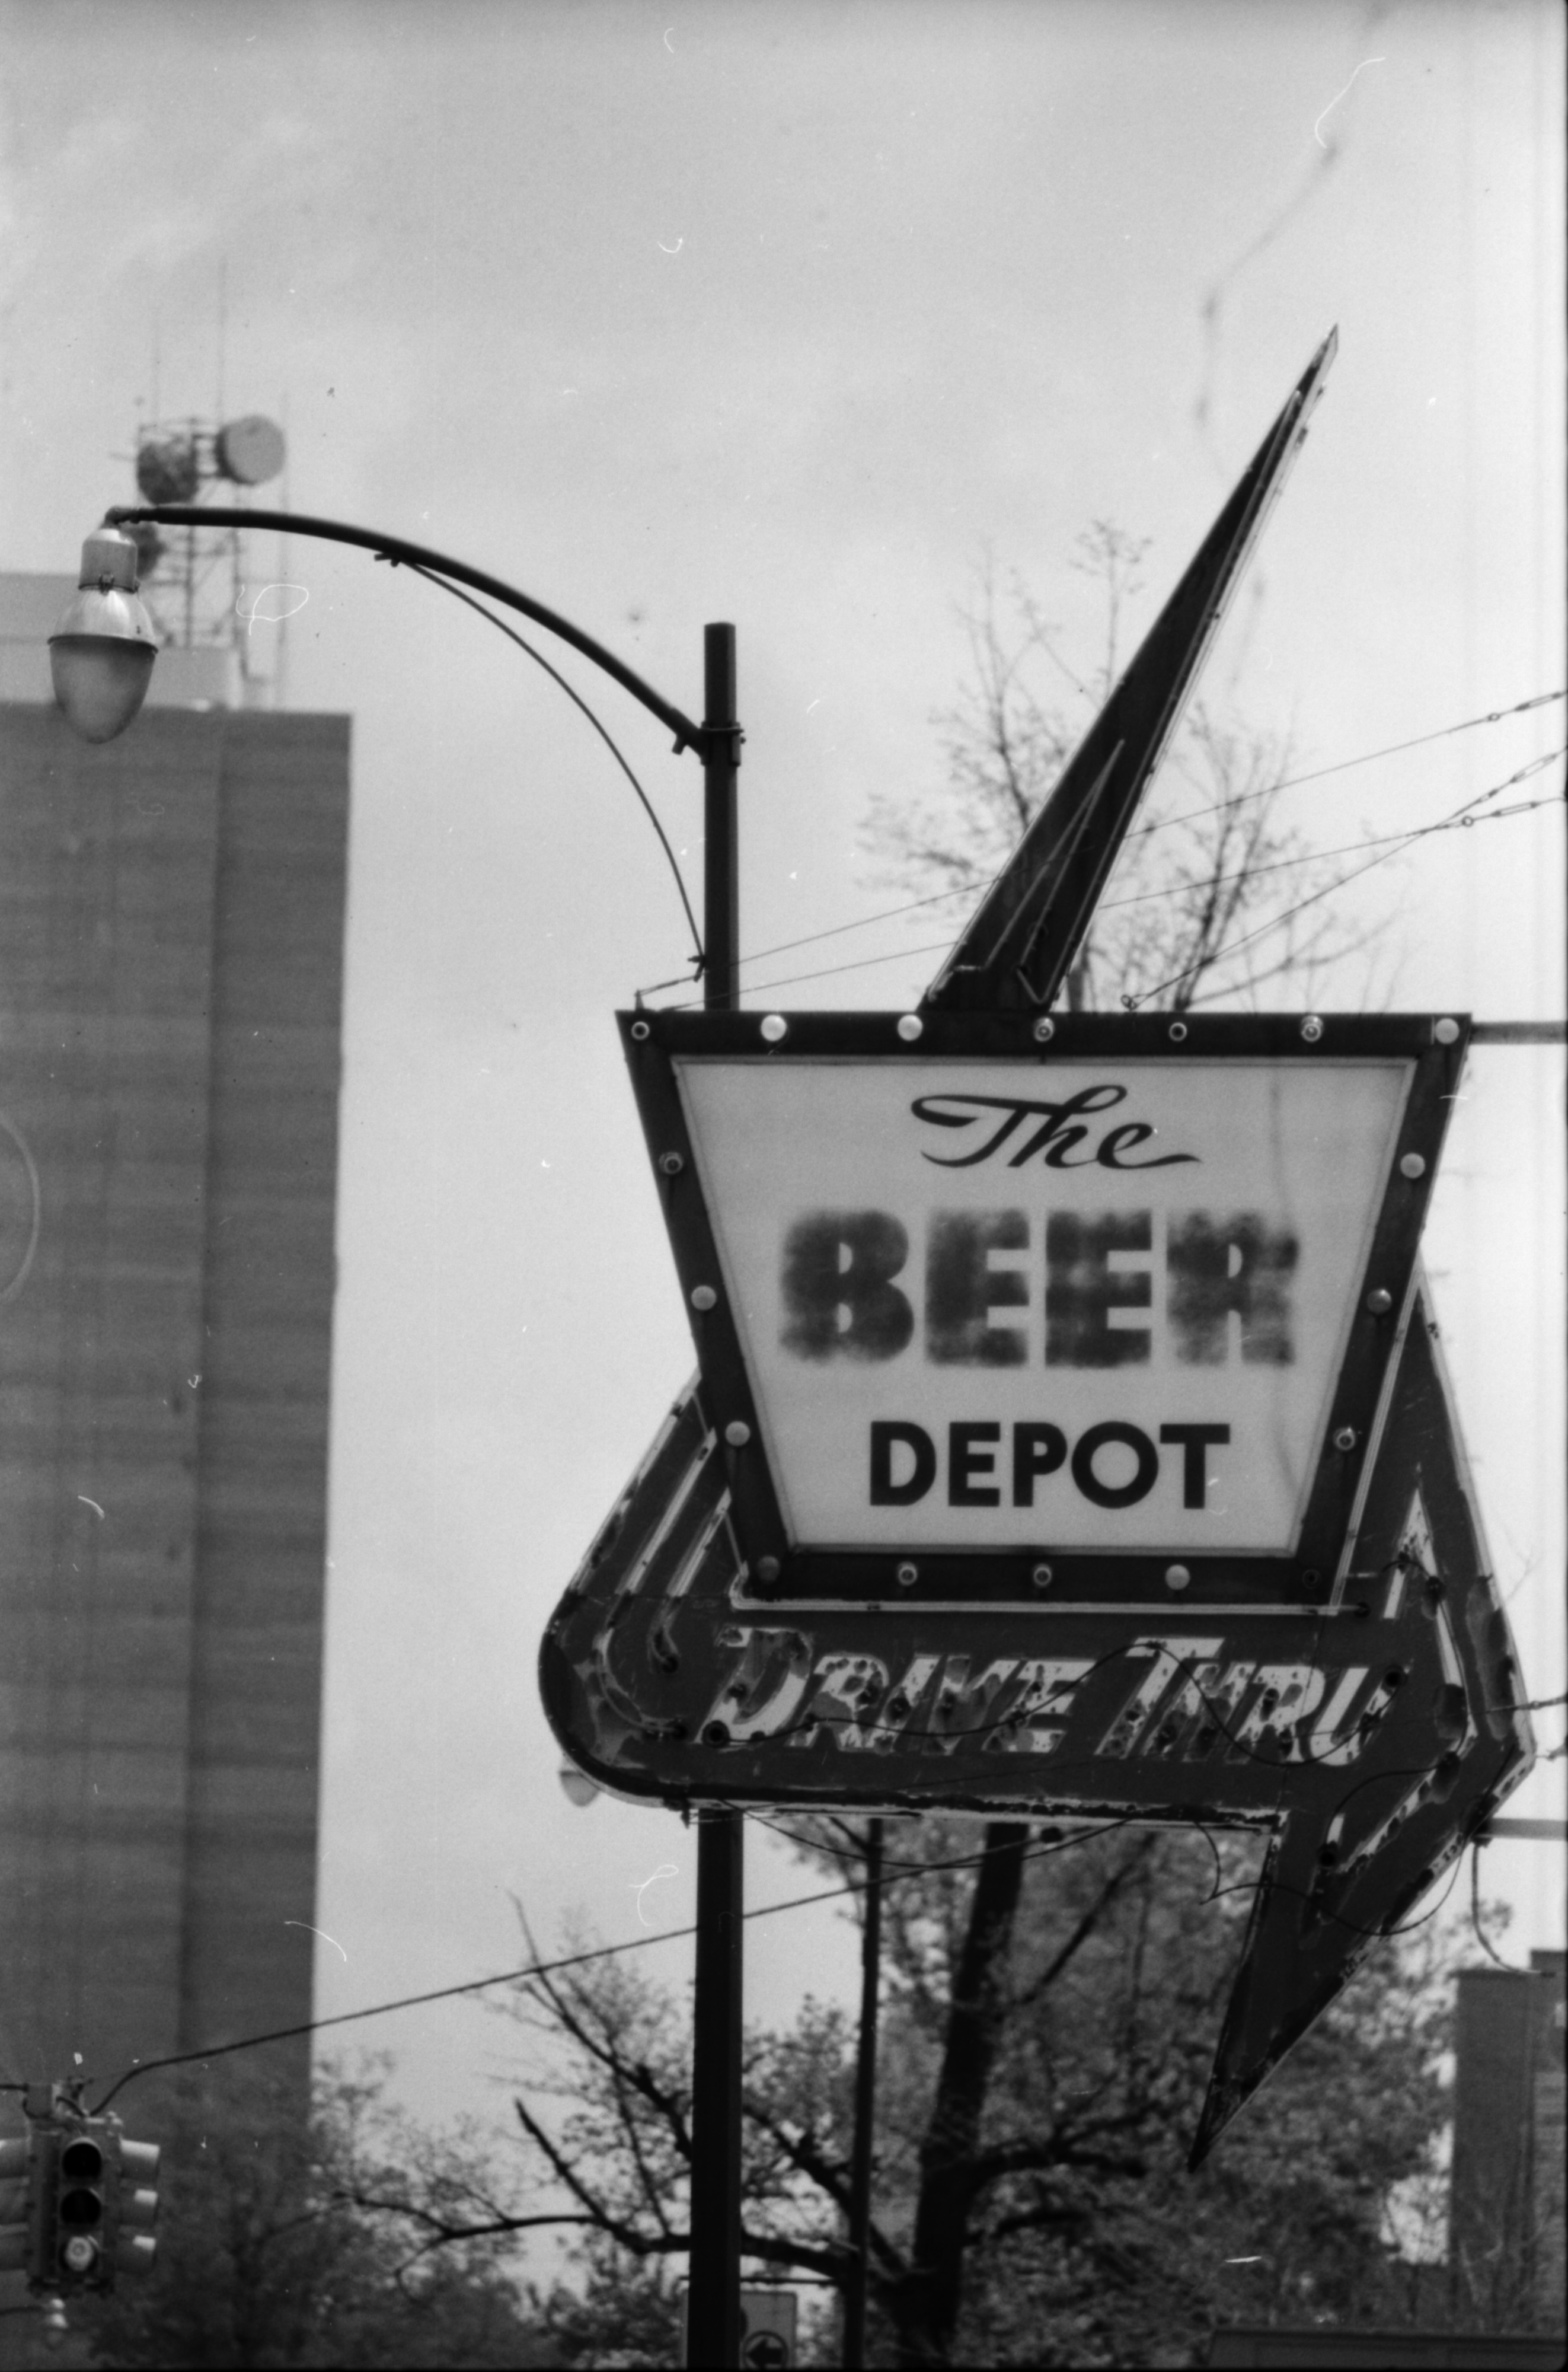 The Beer Depot Sign, May 1975 image